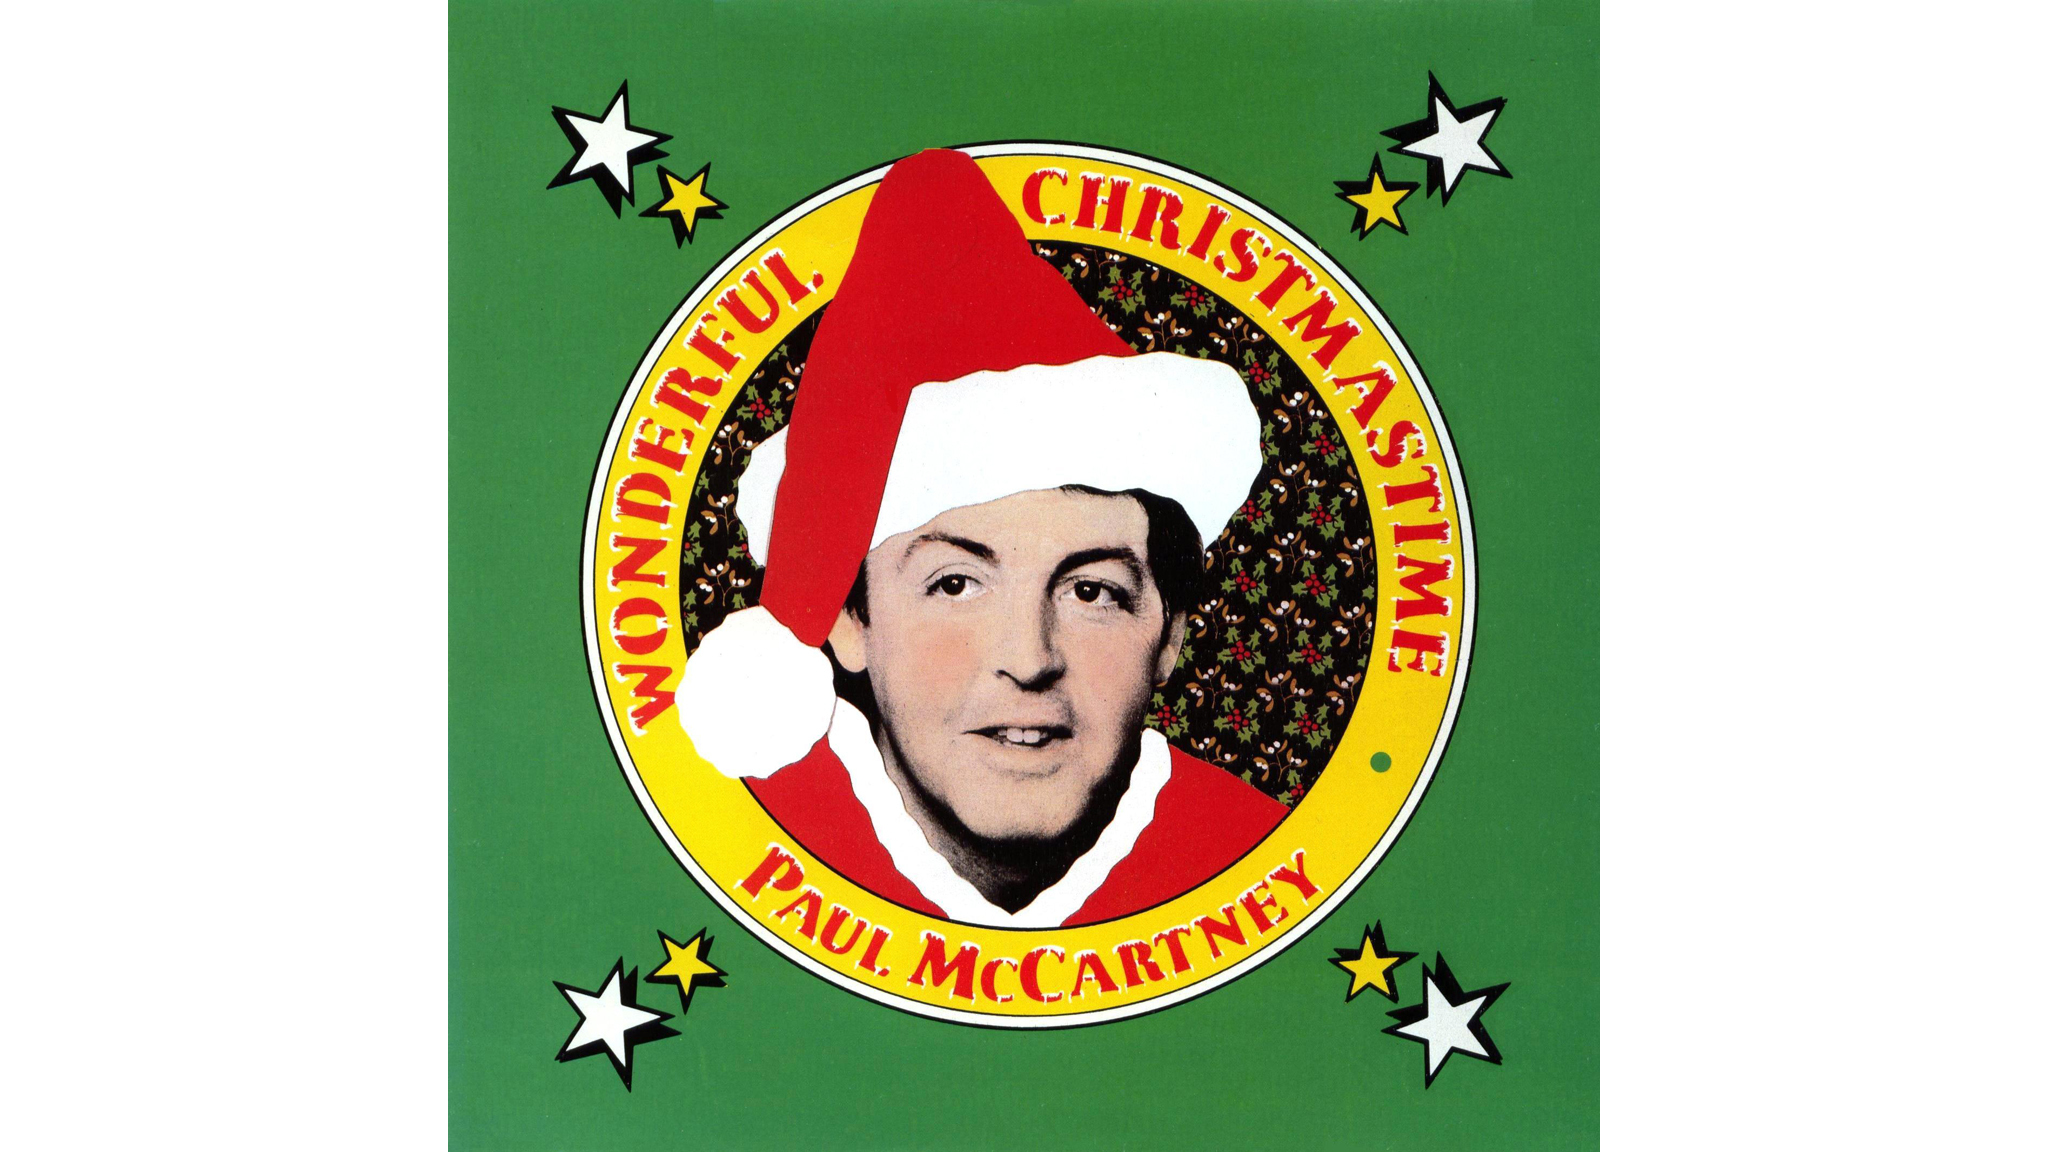 paul mccartney wonderful christmas time cover art - Best Rb Christmas Songs